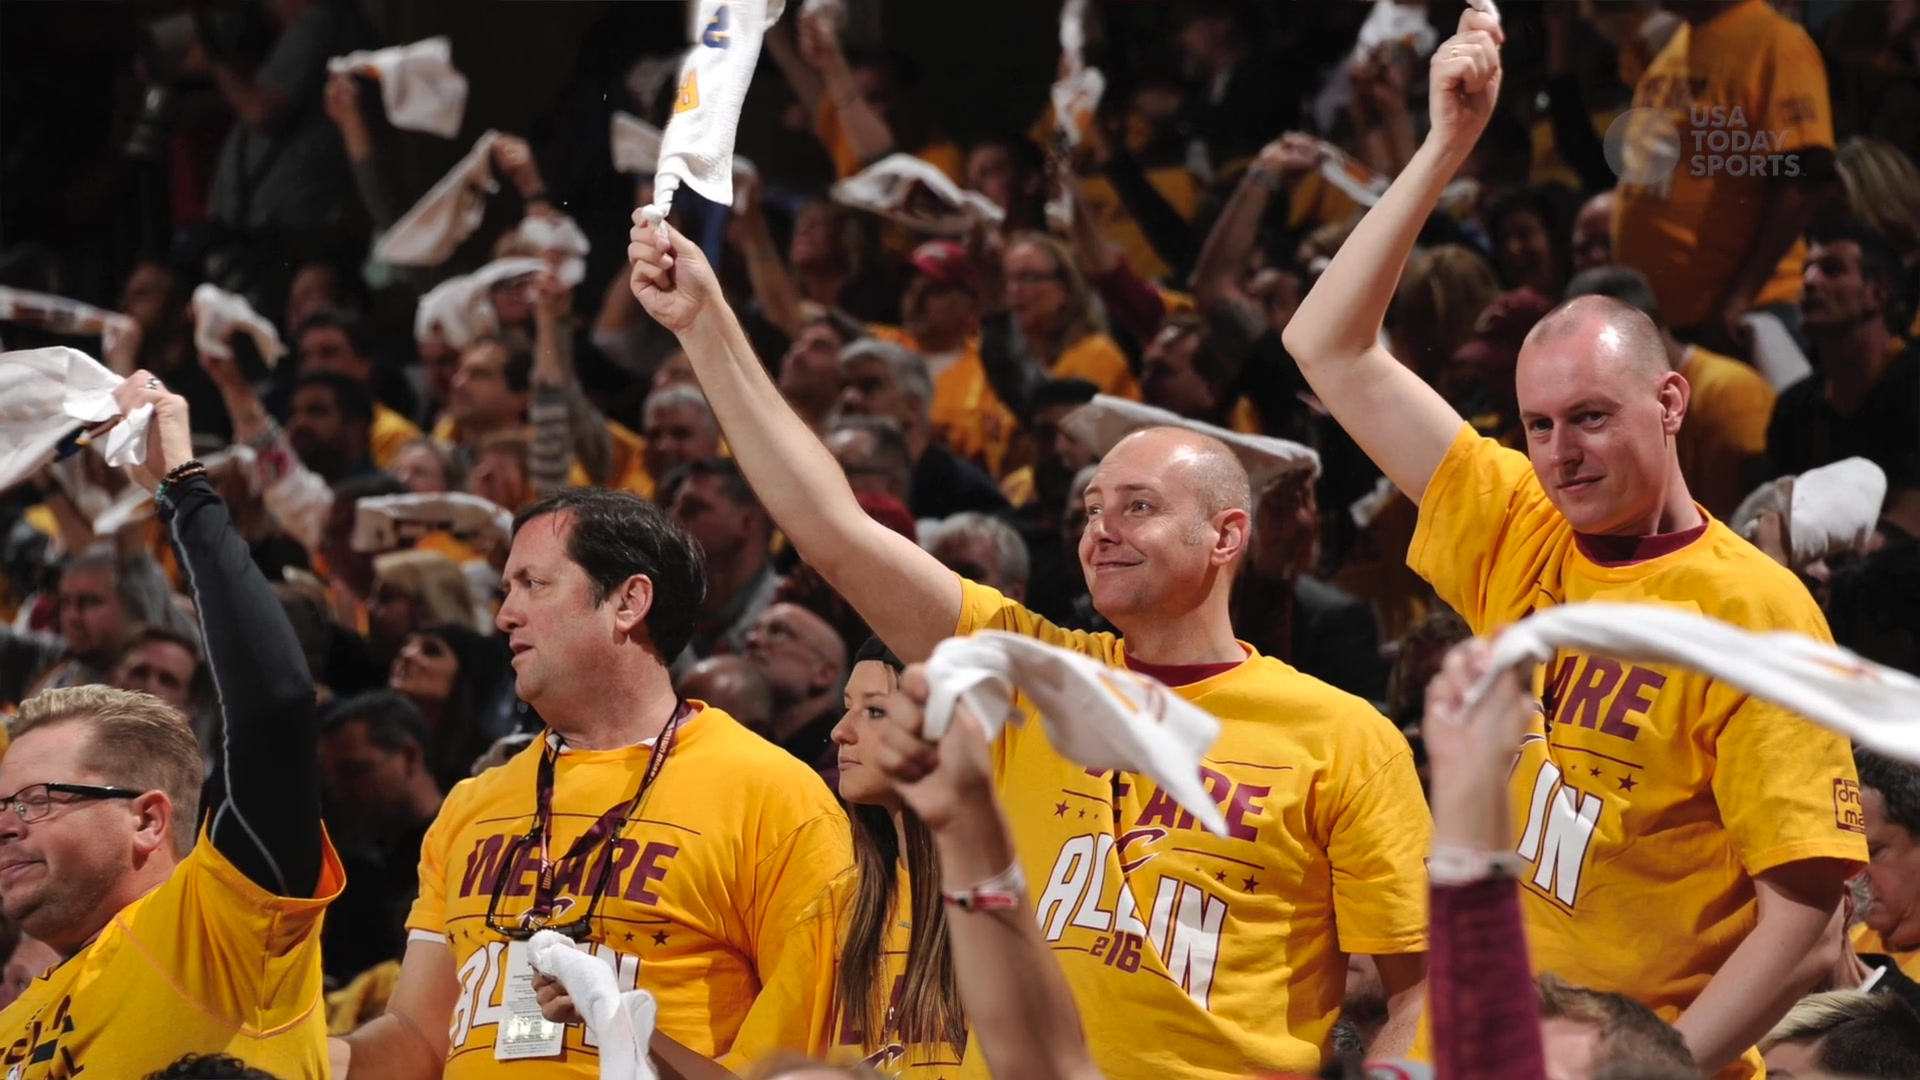 Whose Fans Are Better: Cavaliers or Warriors?